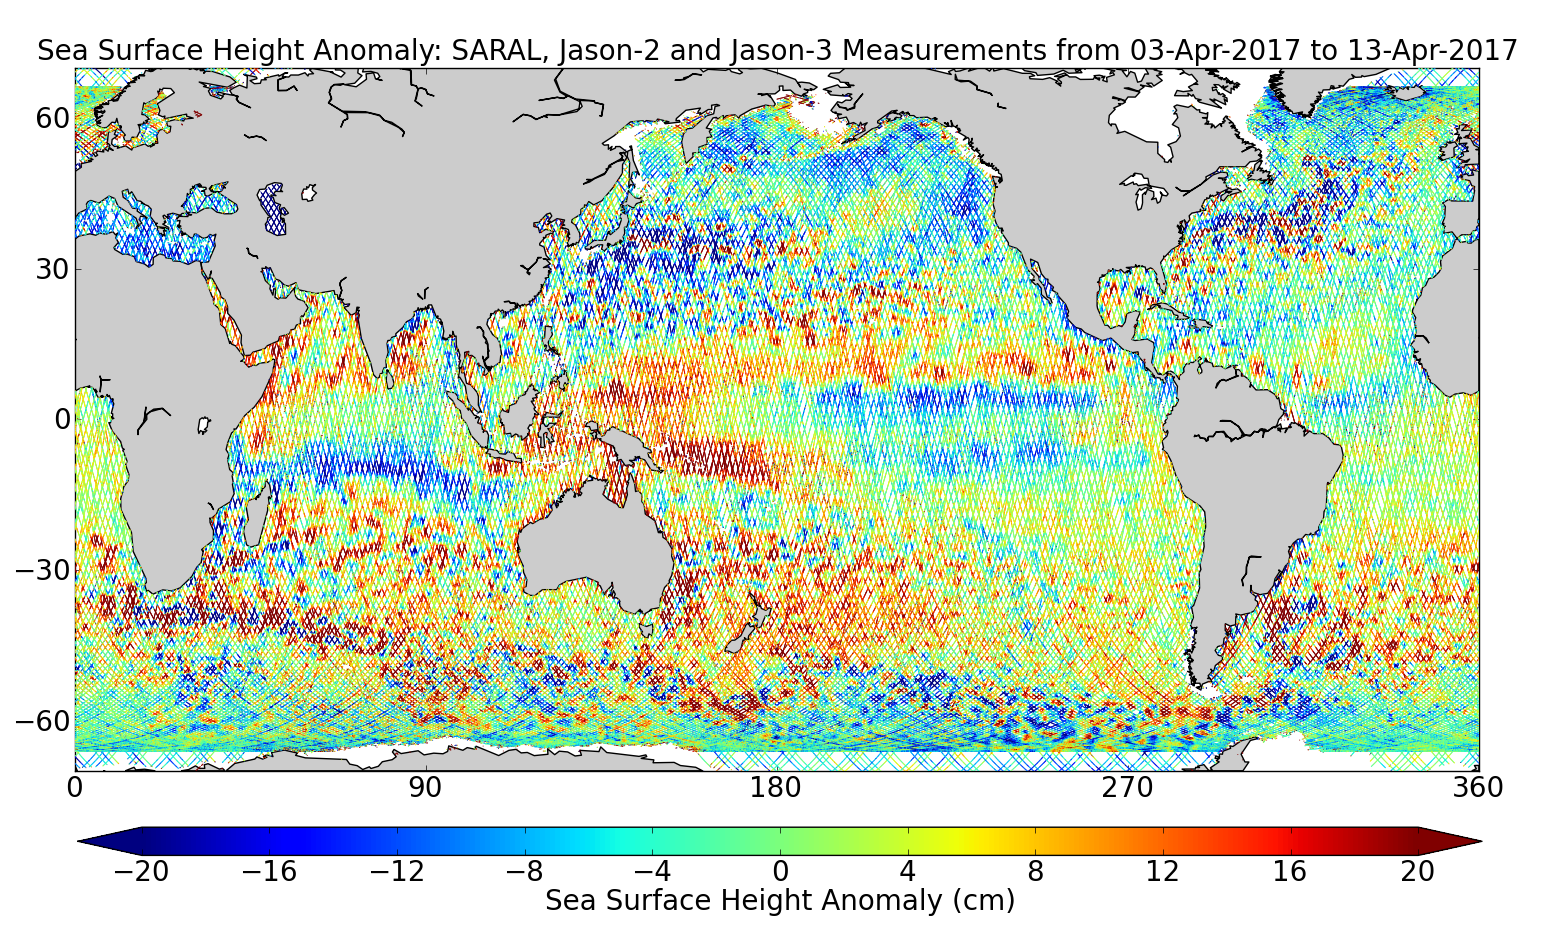 Sea Surface Height Anomaly: SARAL, Jason-2 and Jason-3 Measurements from 03-Apr-2017 to 13-Apr-2017